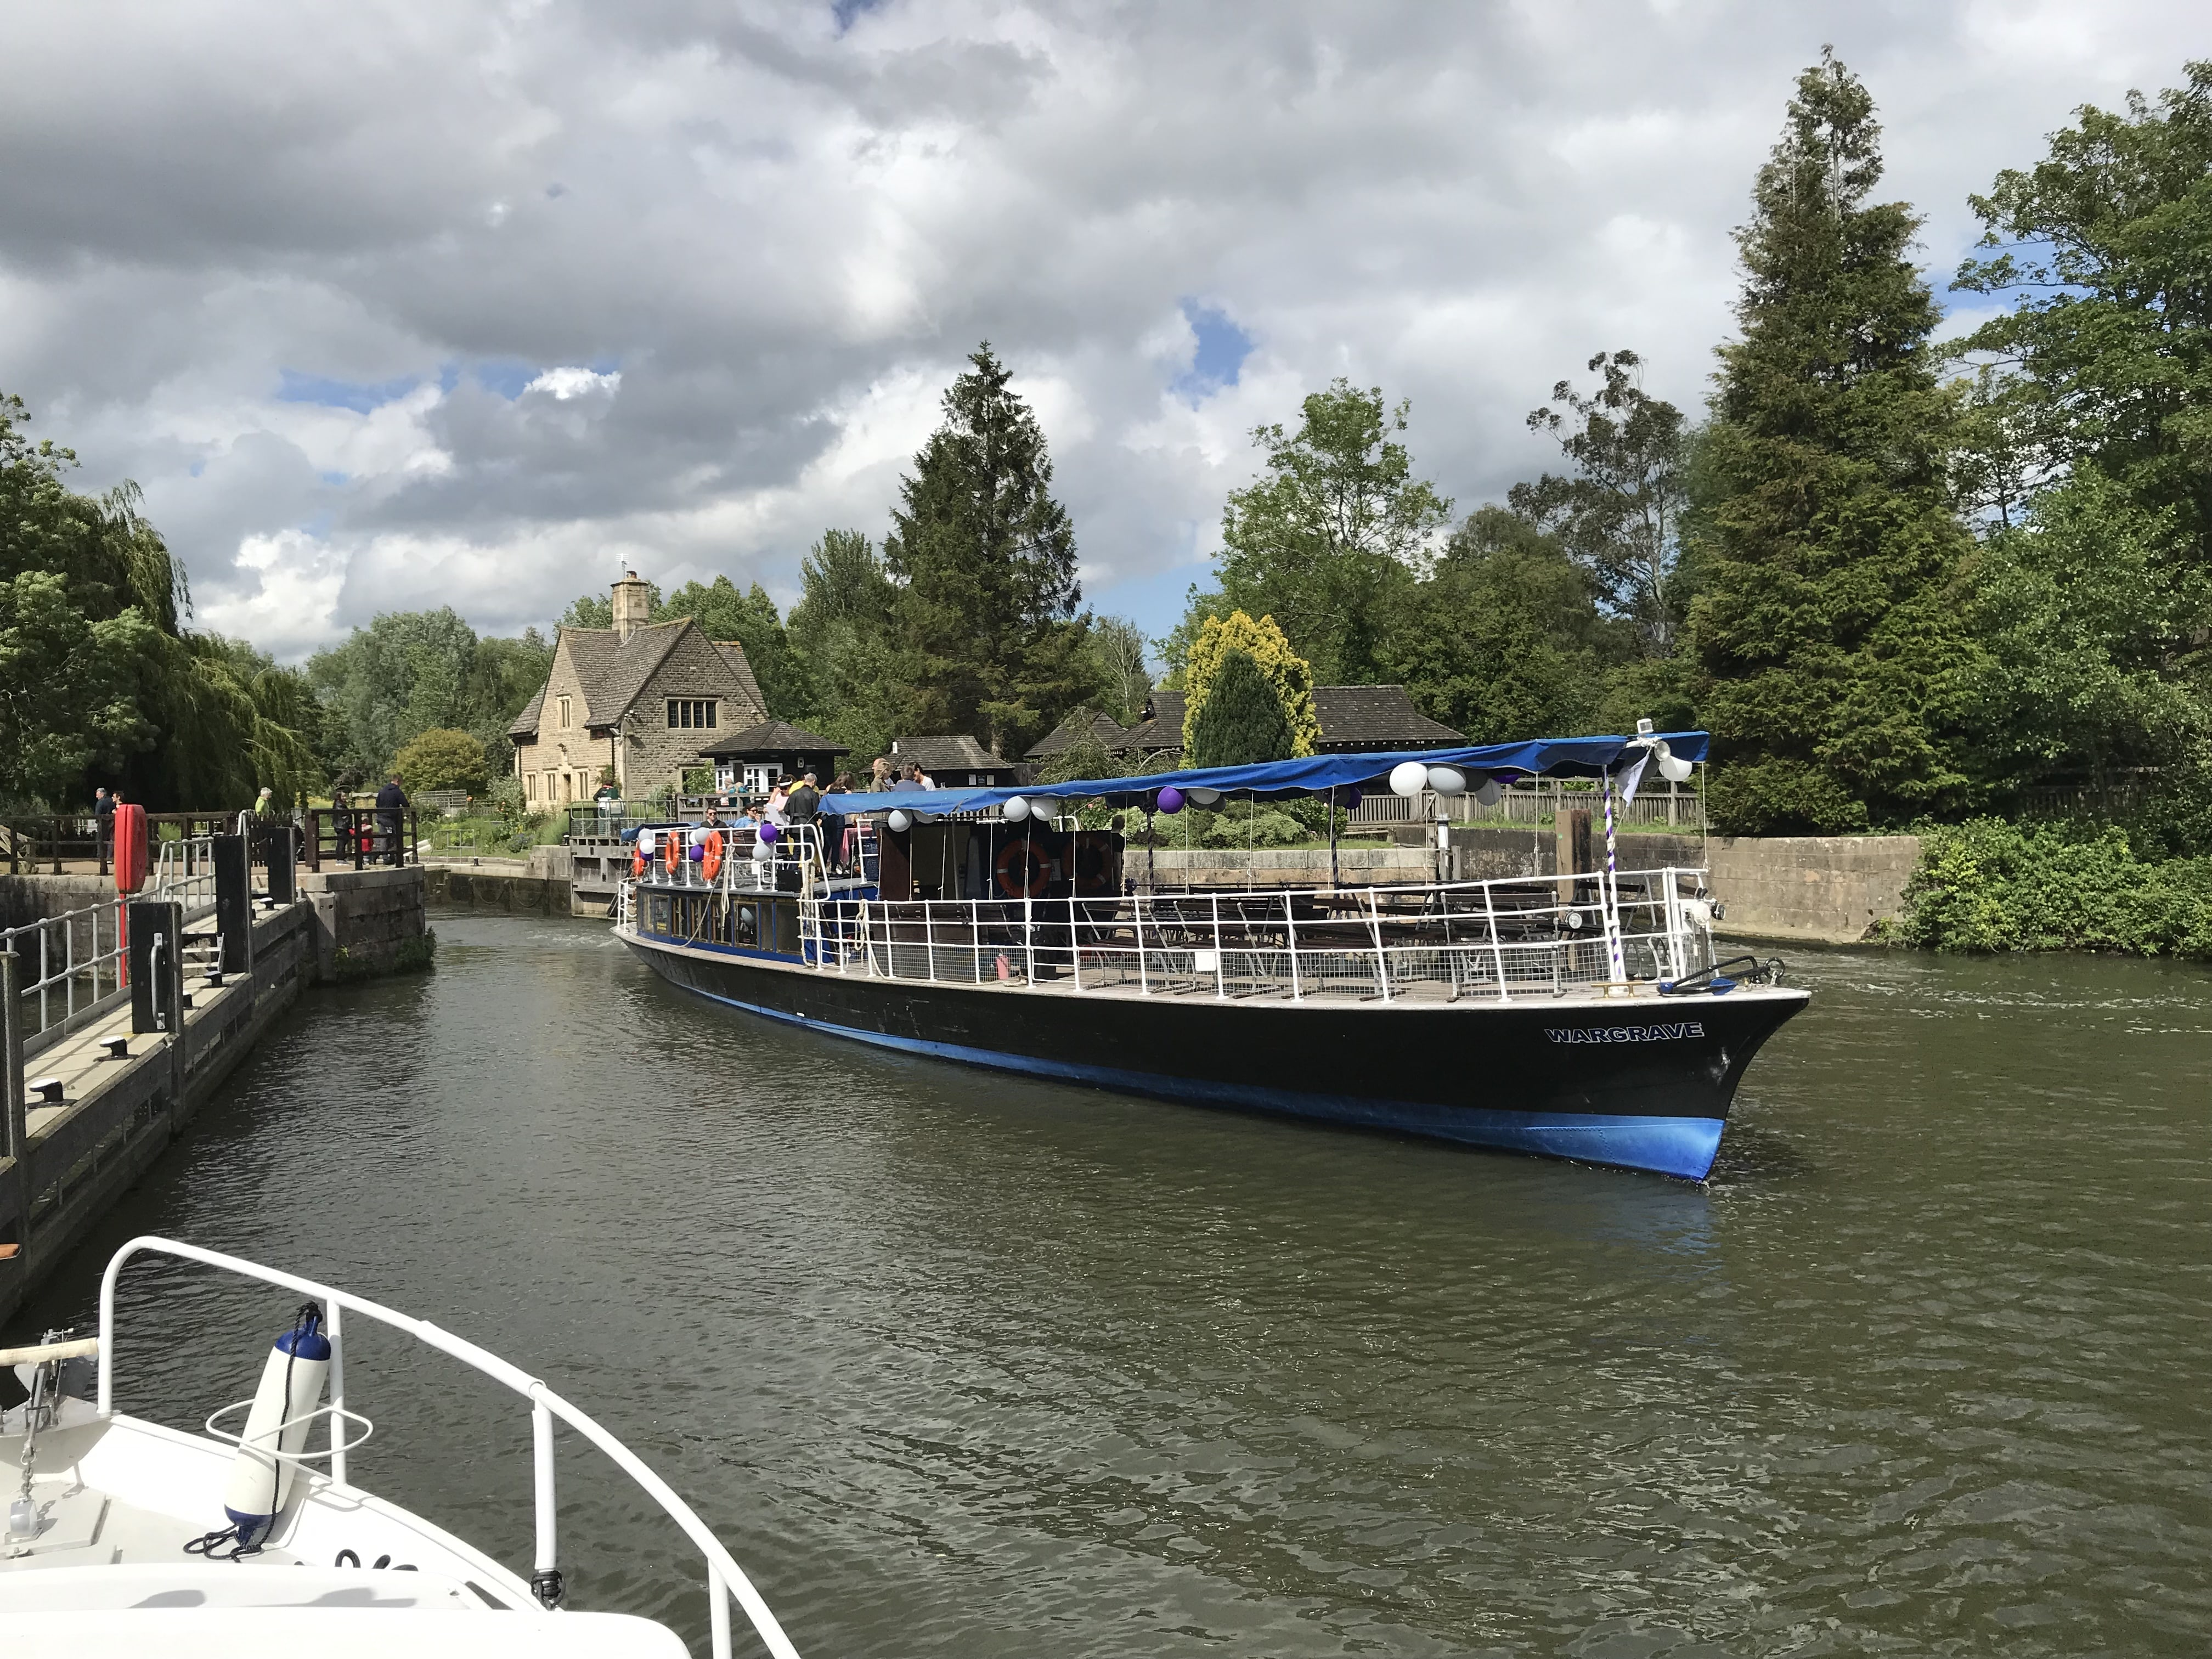 Salters steamer 'Wargrave leaving Iffley Lock' passing by